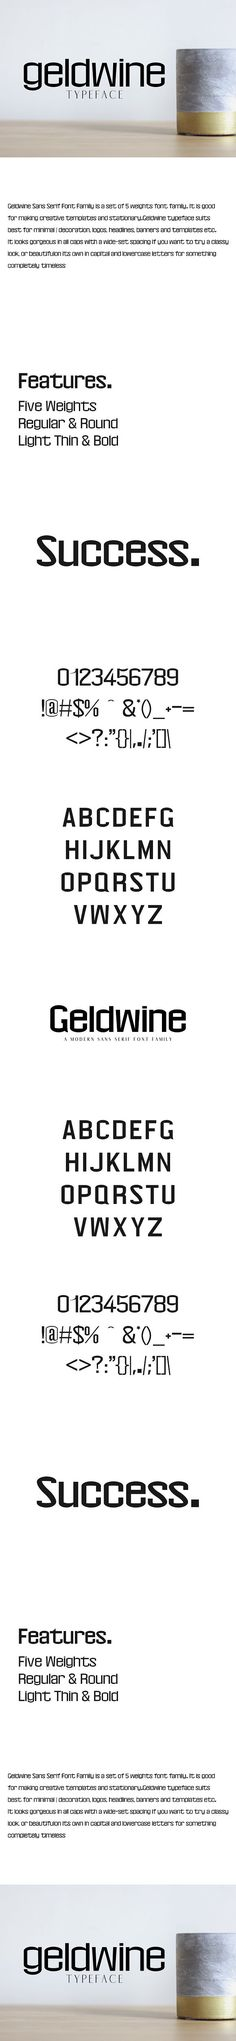 Geldwine Sans Serif Font Family is a outstanding modern sans serif font family. It is good for making creative templates and Typewriter Fonts, Modern Sans Serif Fonts, Minimal Decor, Punctuation, Font Family, How To Look Classy, Lower Case Letters, Things To Come, Minimalist Decor